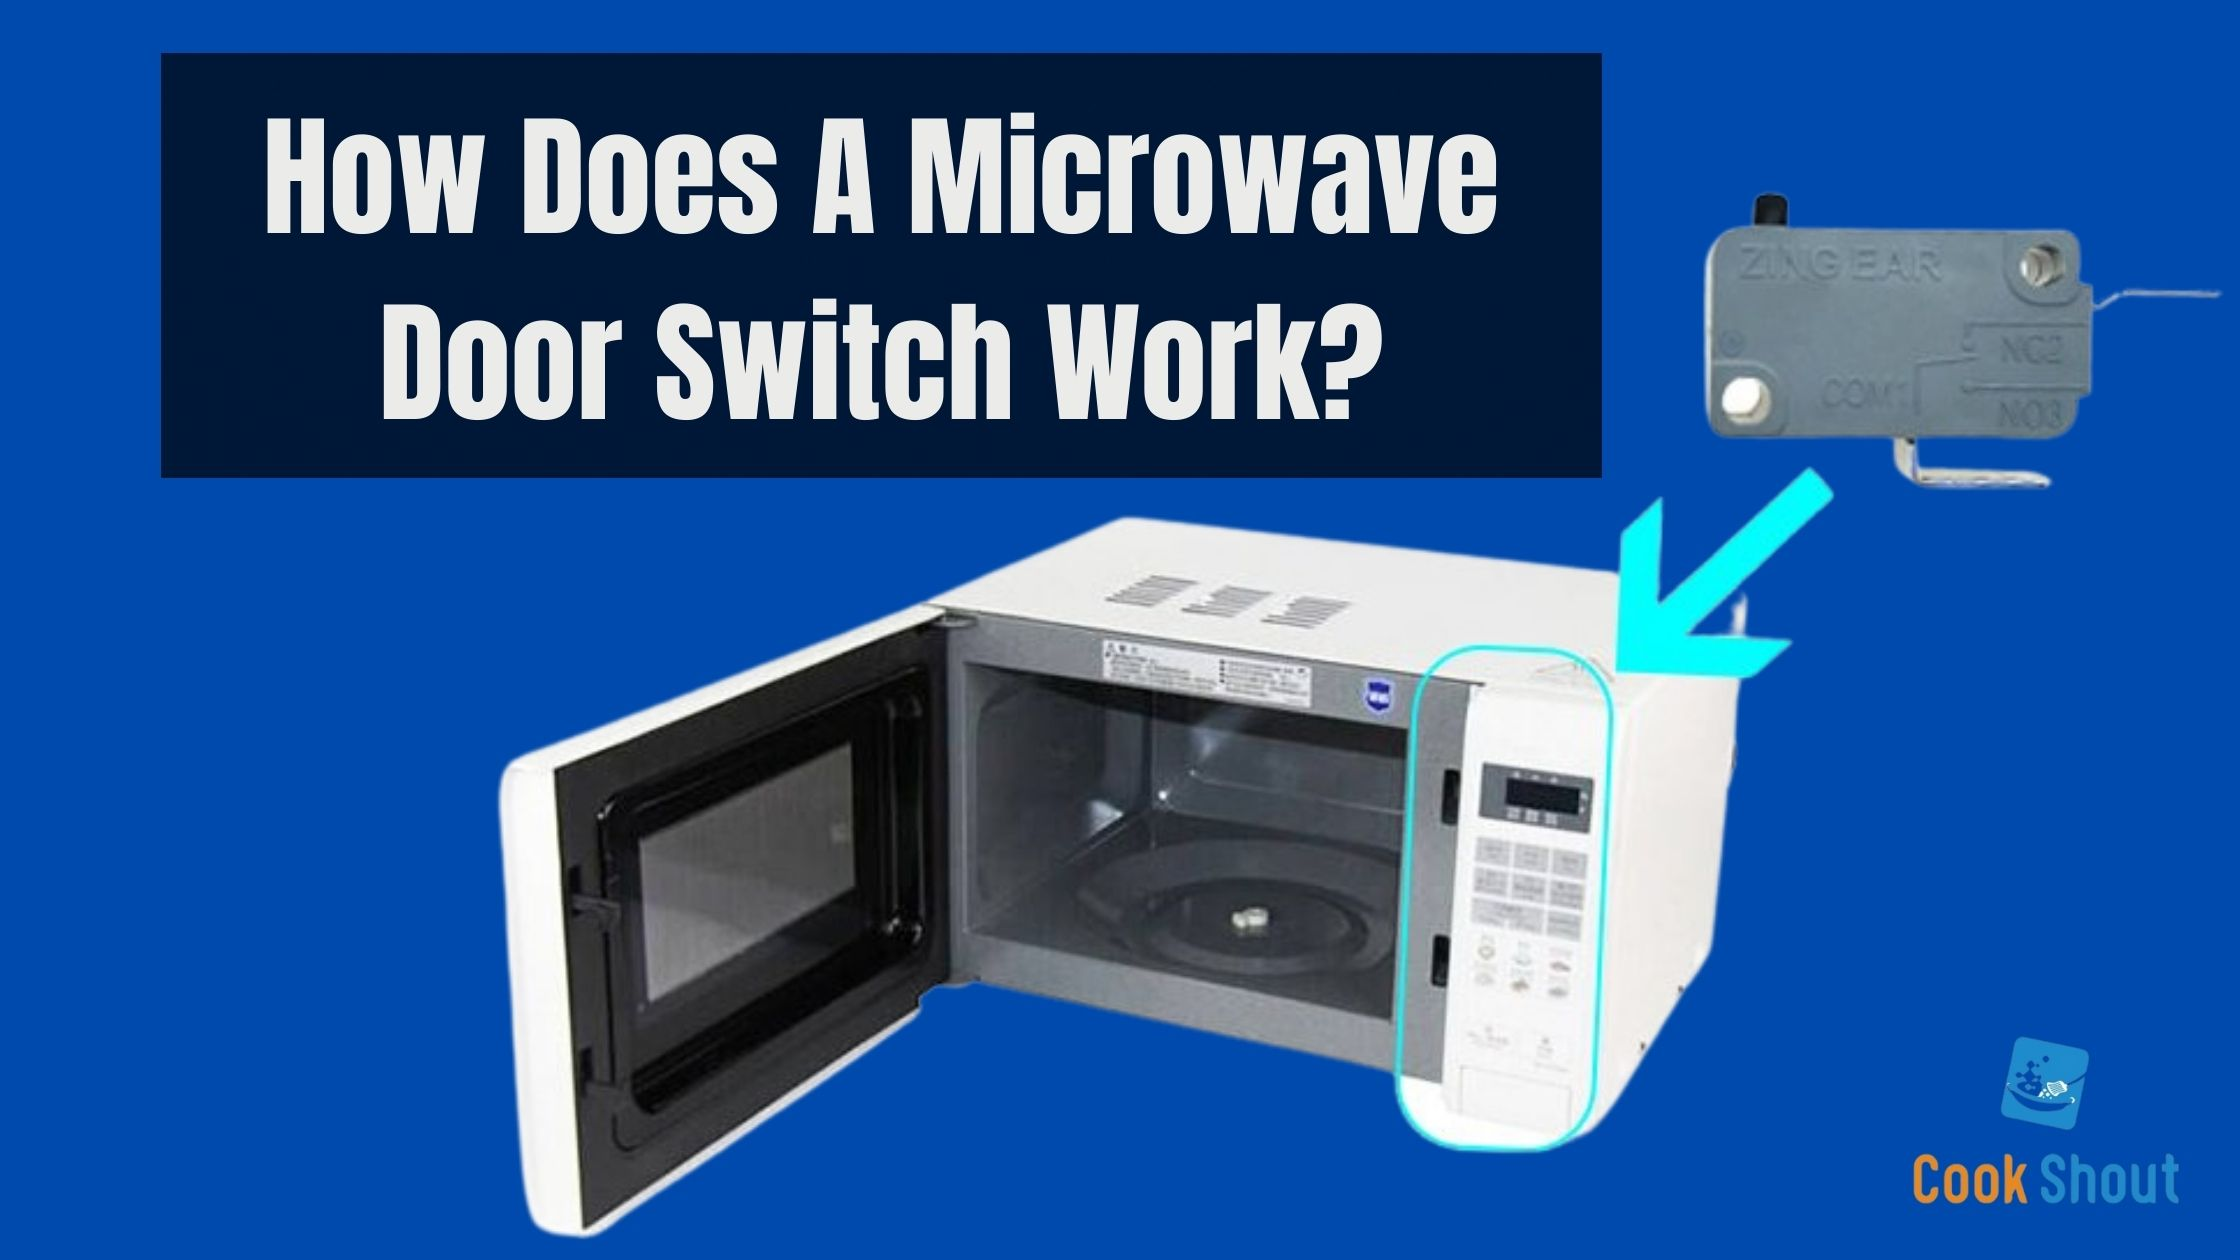 How Does A Microwave Door Switch Work?